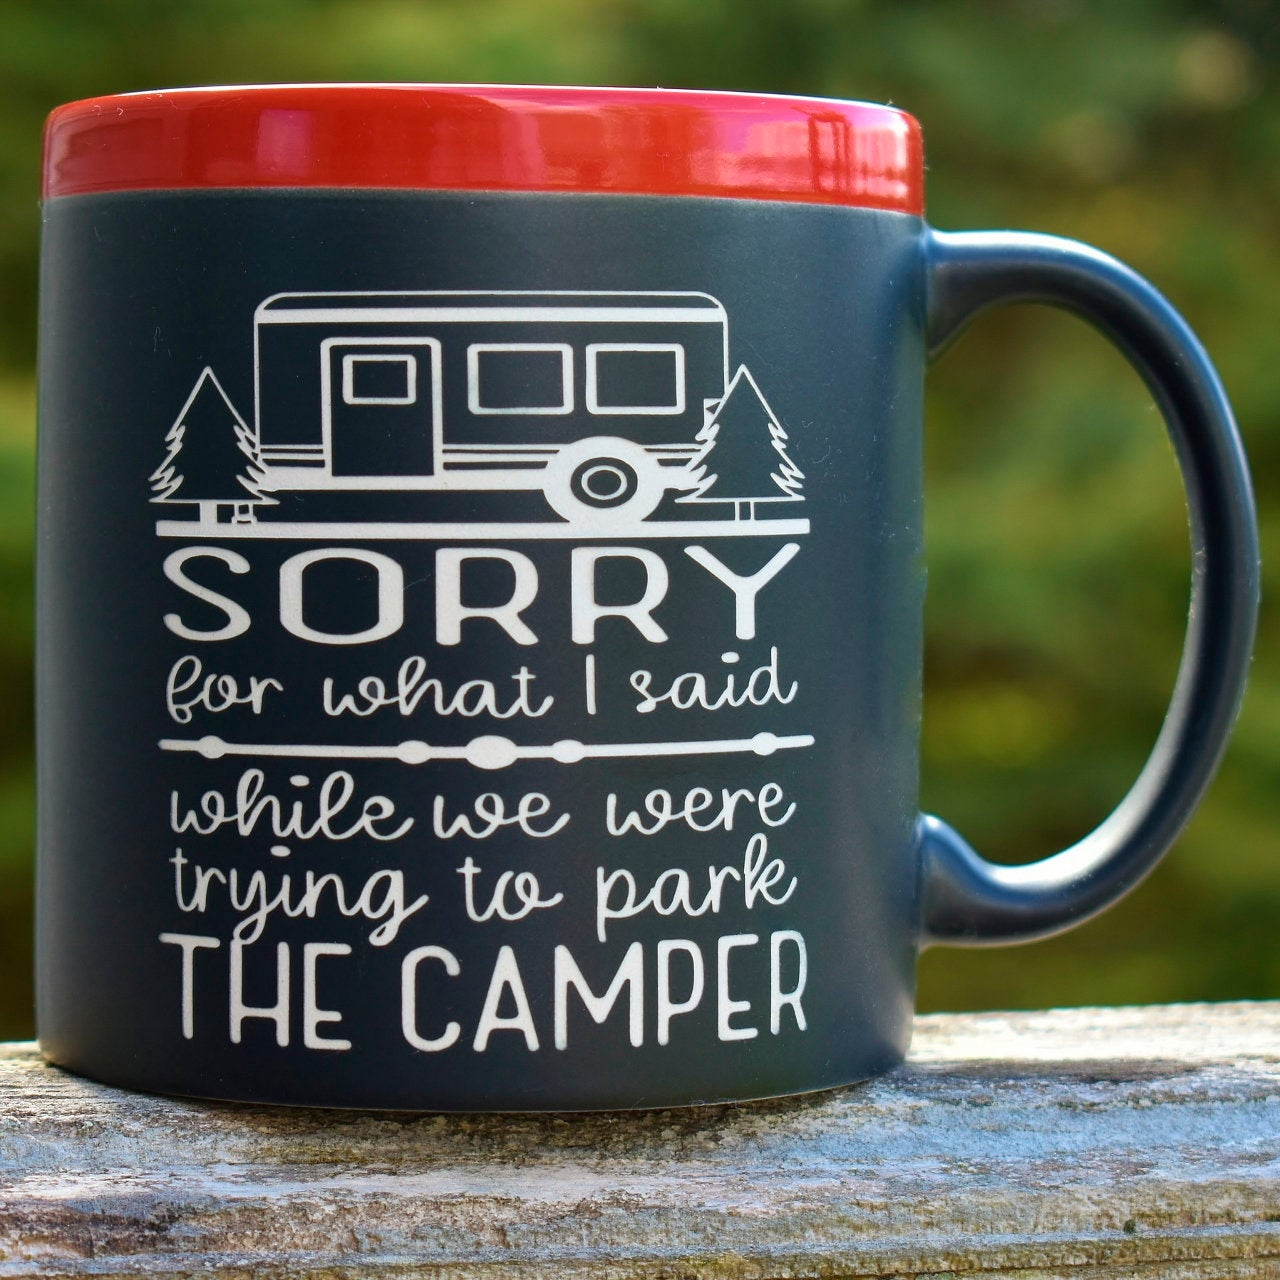 Sorry for What I Said Parking the Camper 22 oz Coffee Mug Camping Outdoor Lover Gift